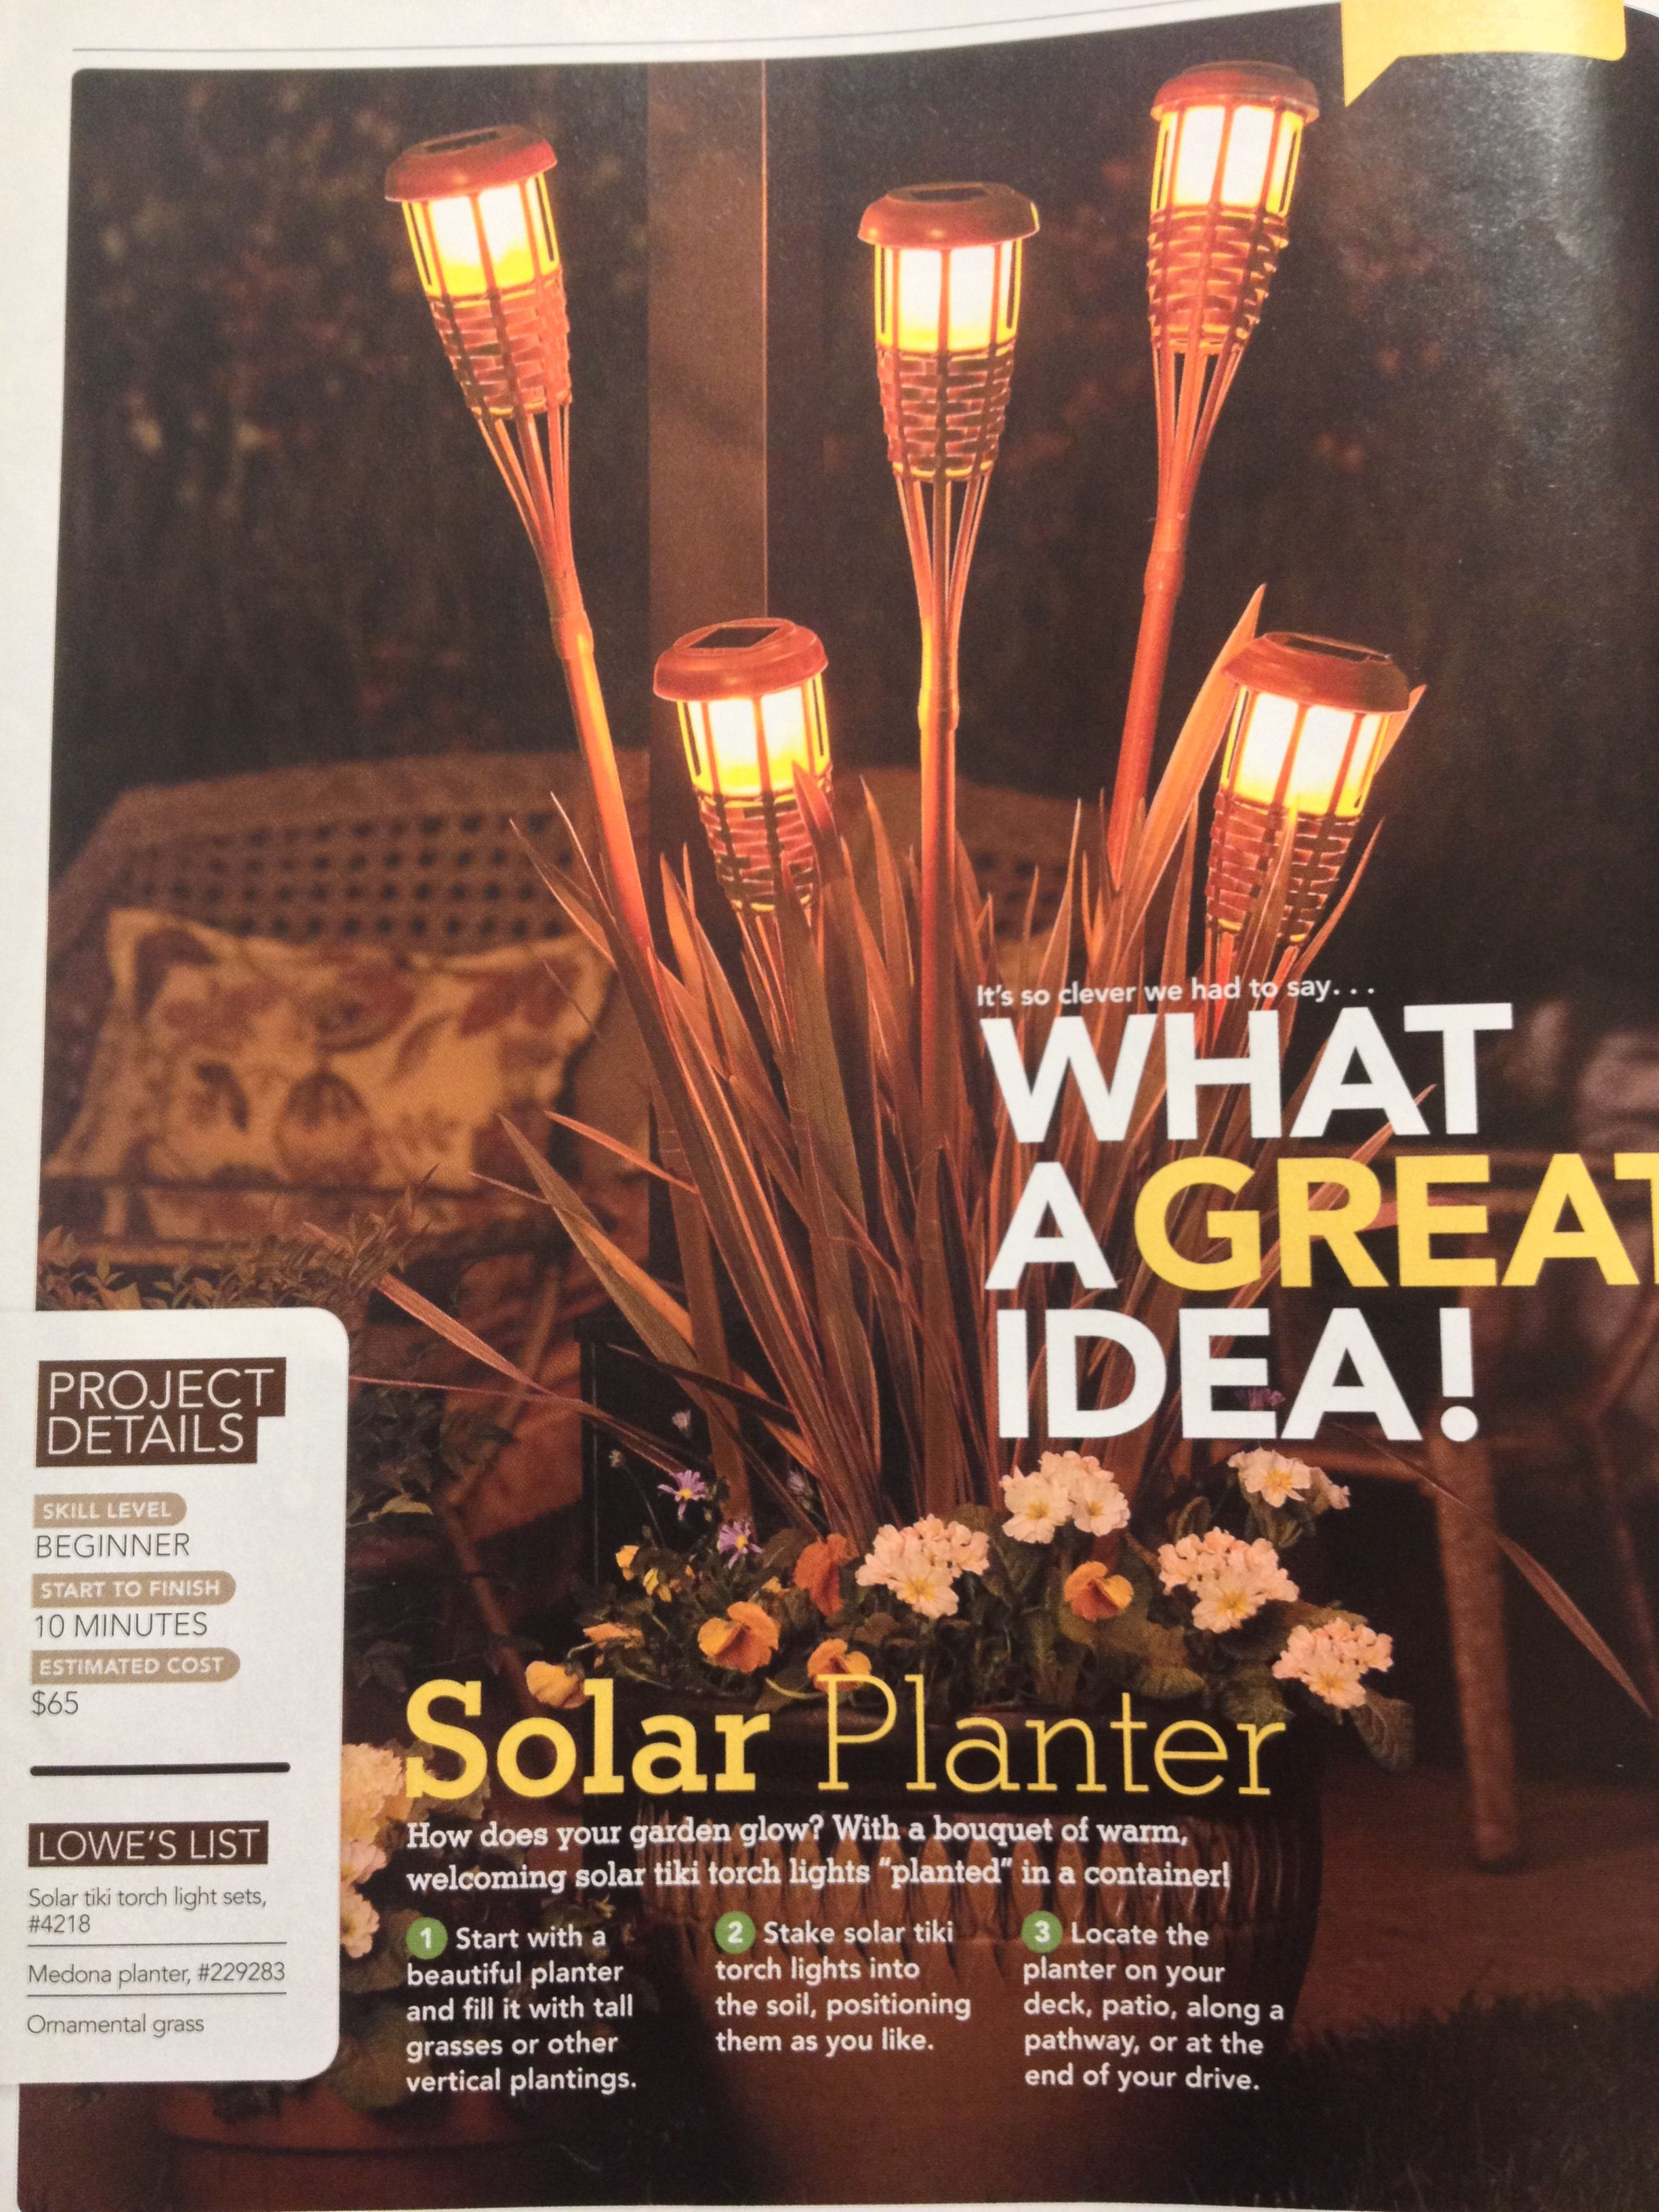 Solar planter idea from Lowes creative ideas mag spring 2011 ...